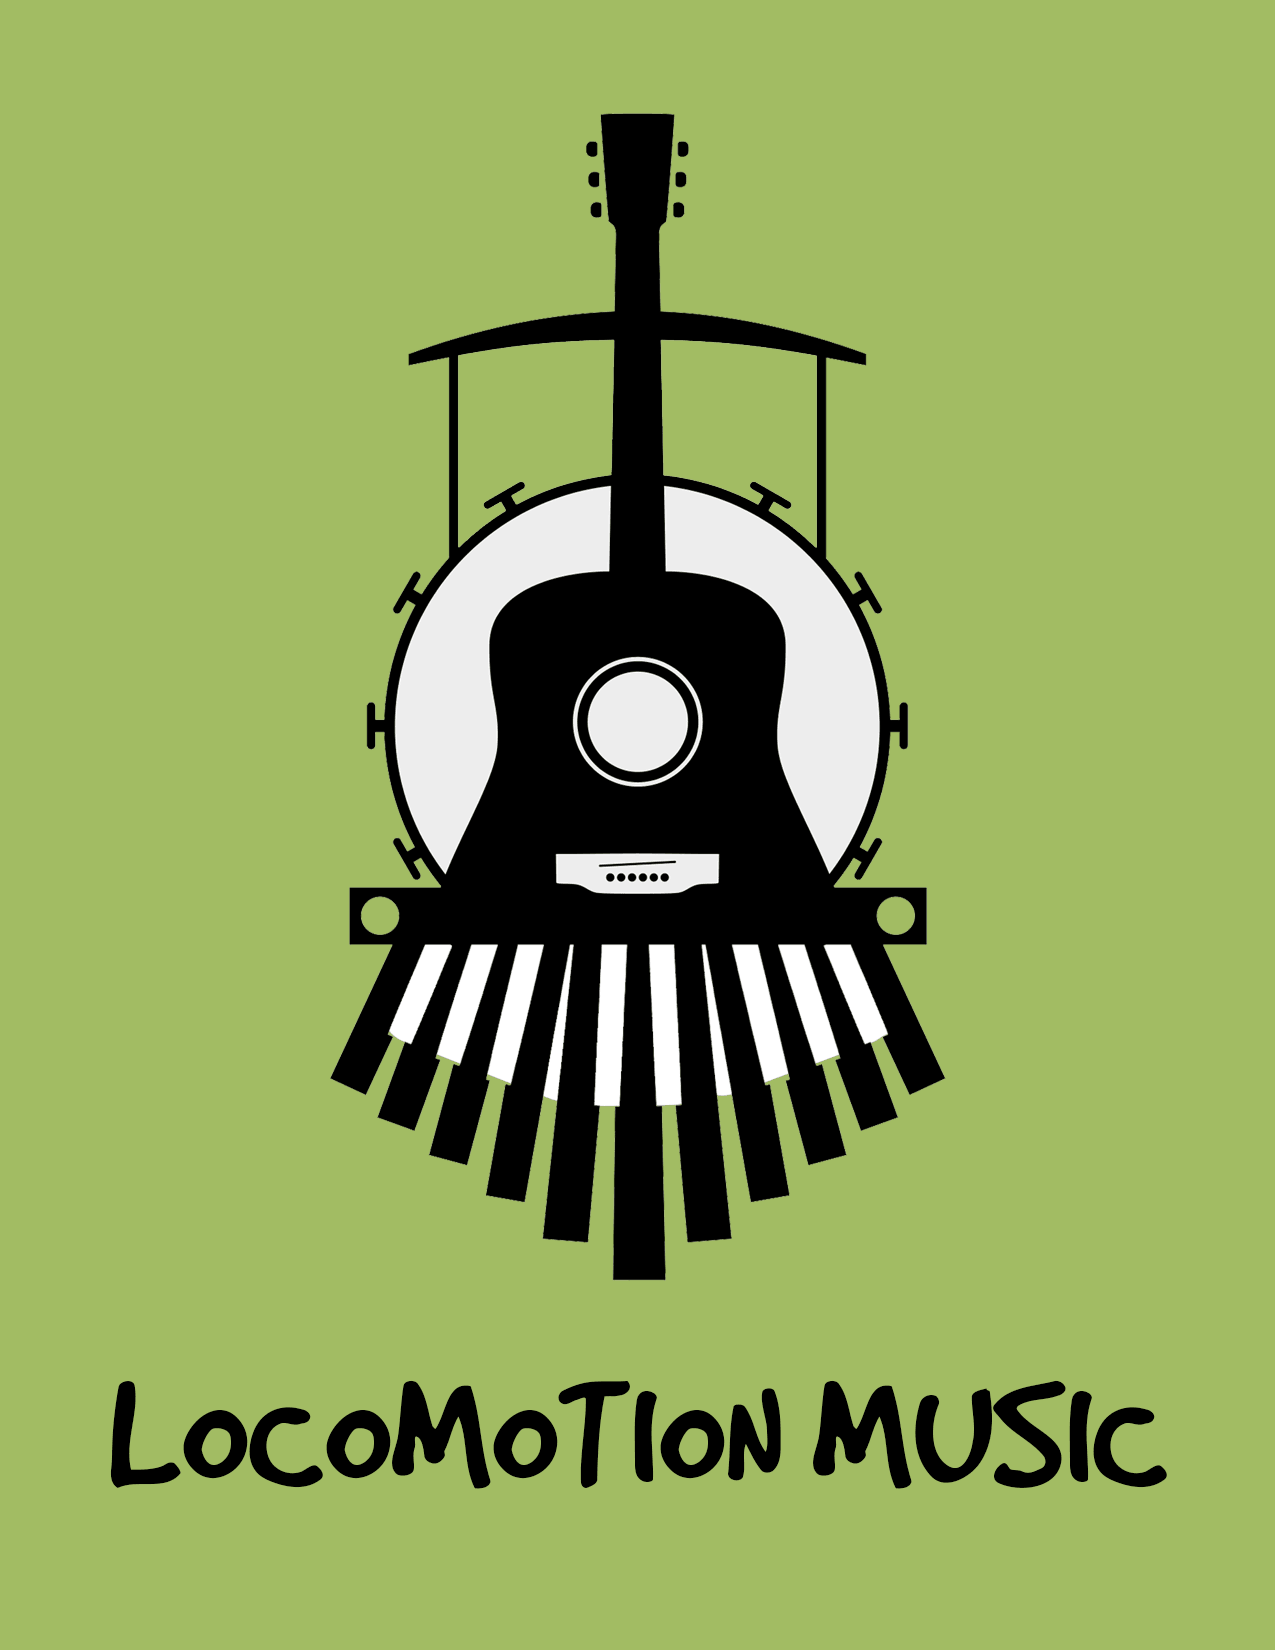 Locomotion Music